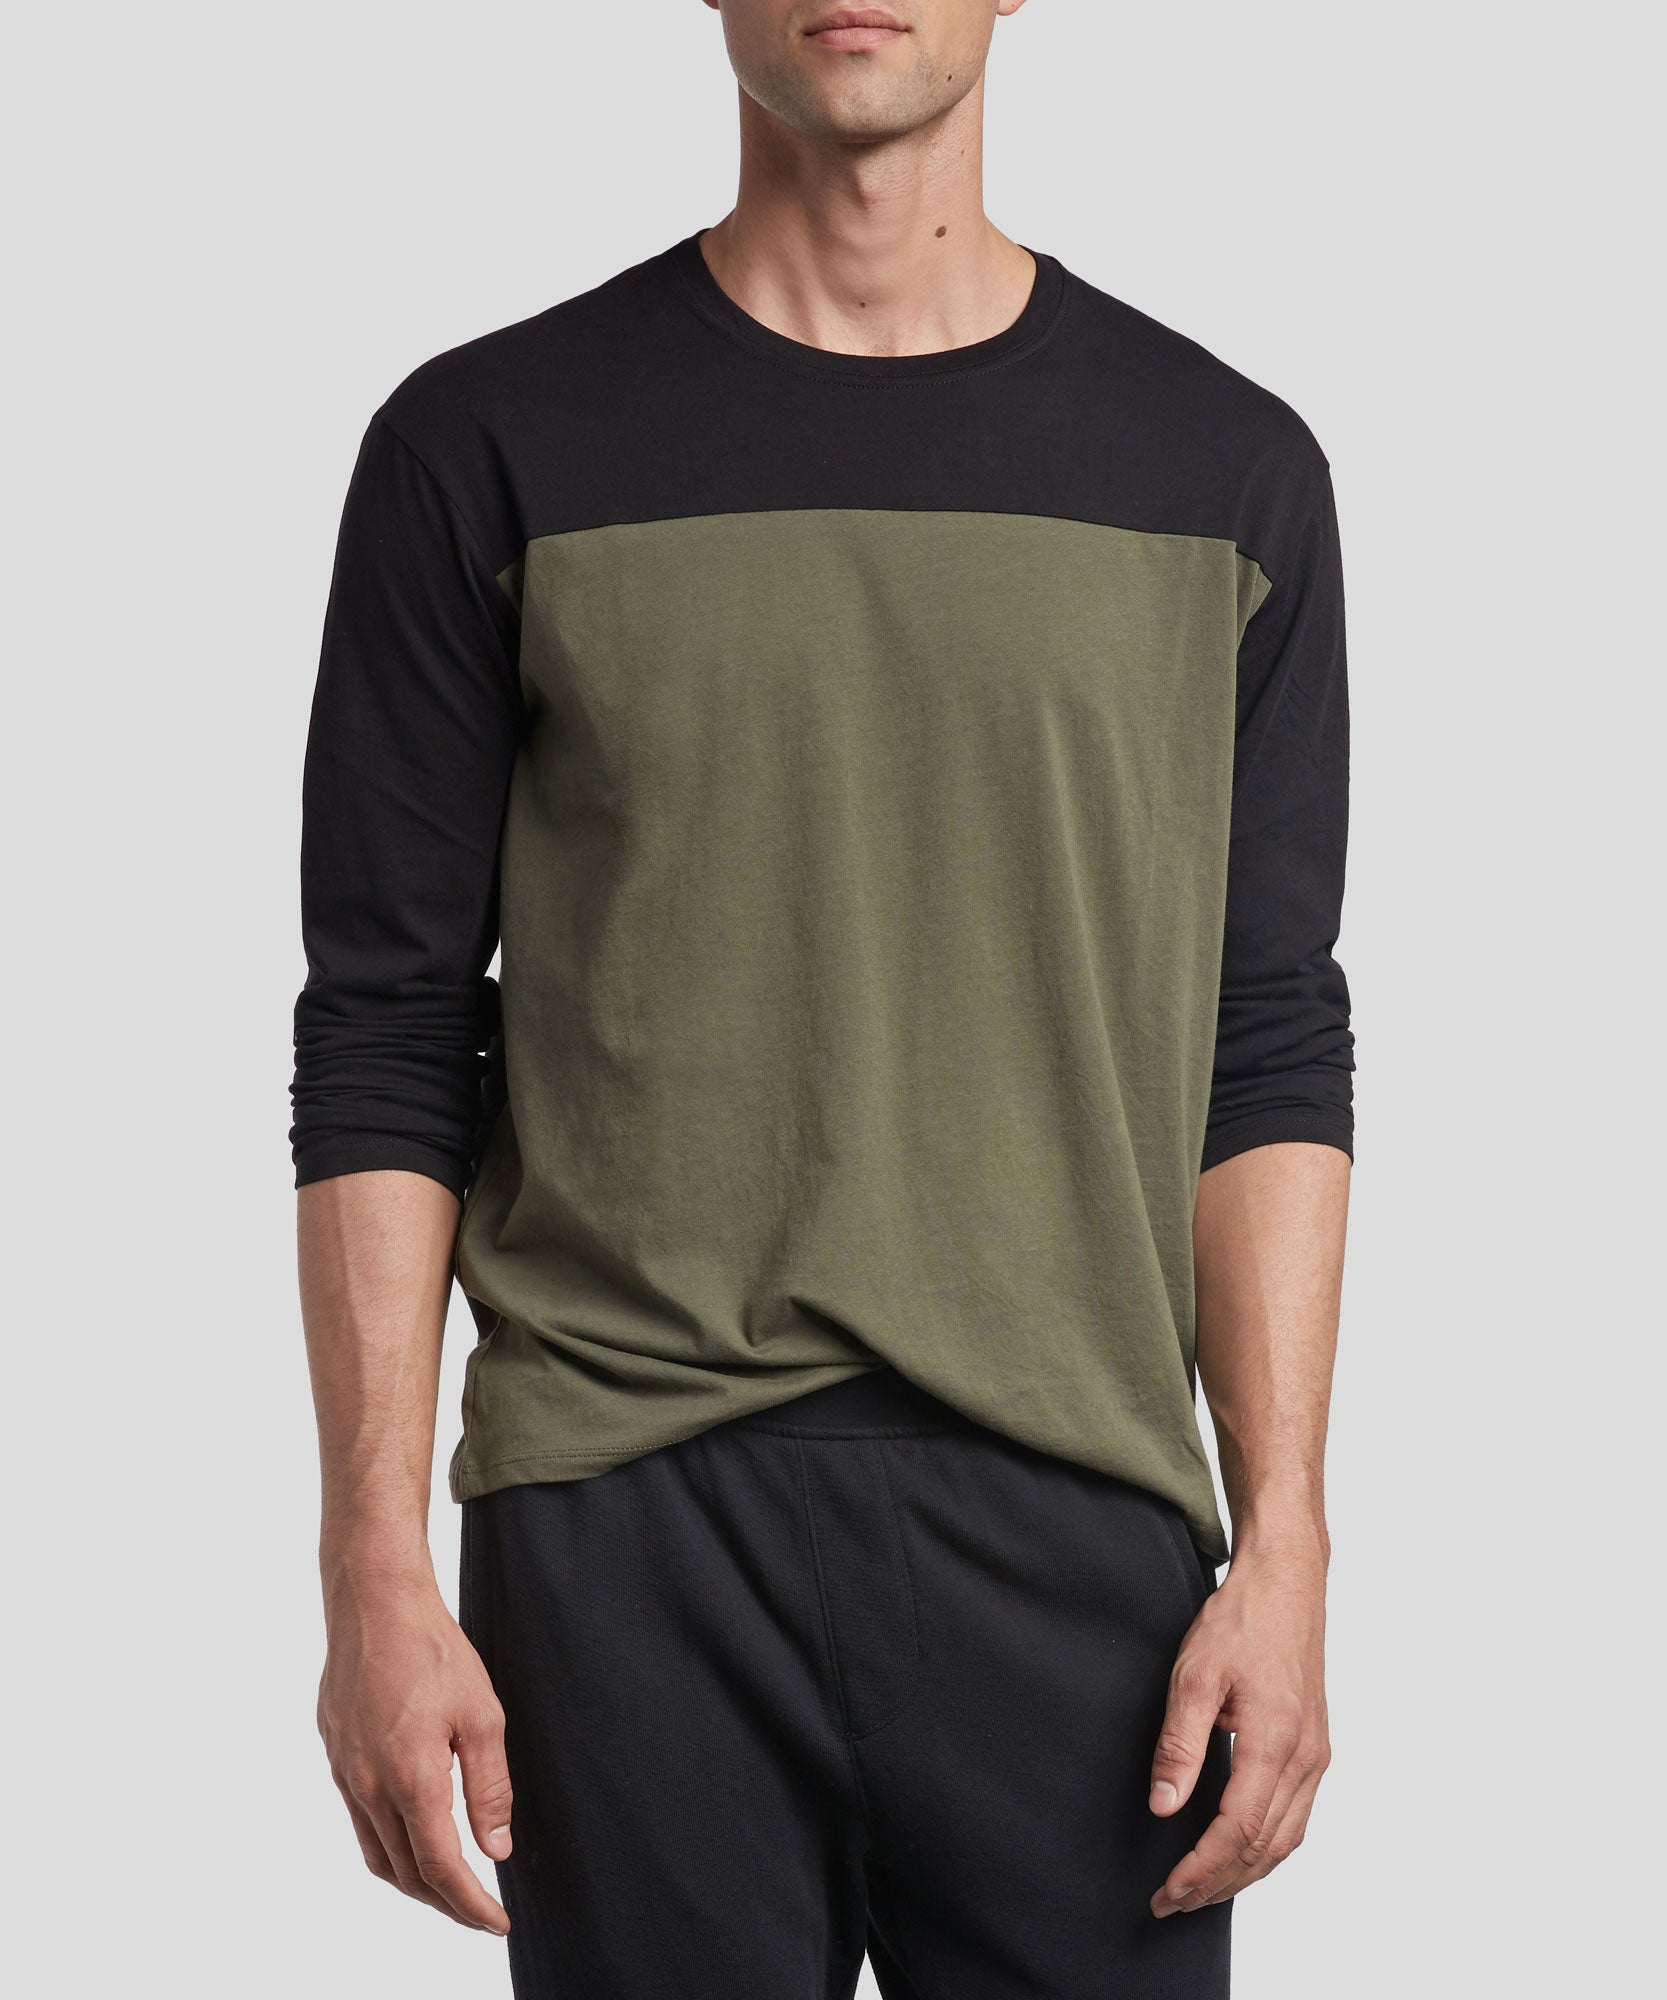 Black and Beetle Classic Jersey Colorblock Long Sleeve Crew Neck Tee - Men's Cotton Long Sleeve T-shirt by ATM Anthony Thomas Melillo